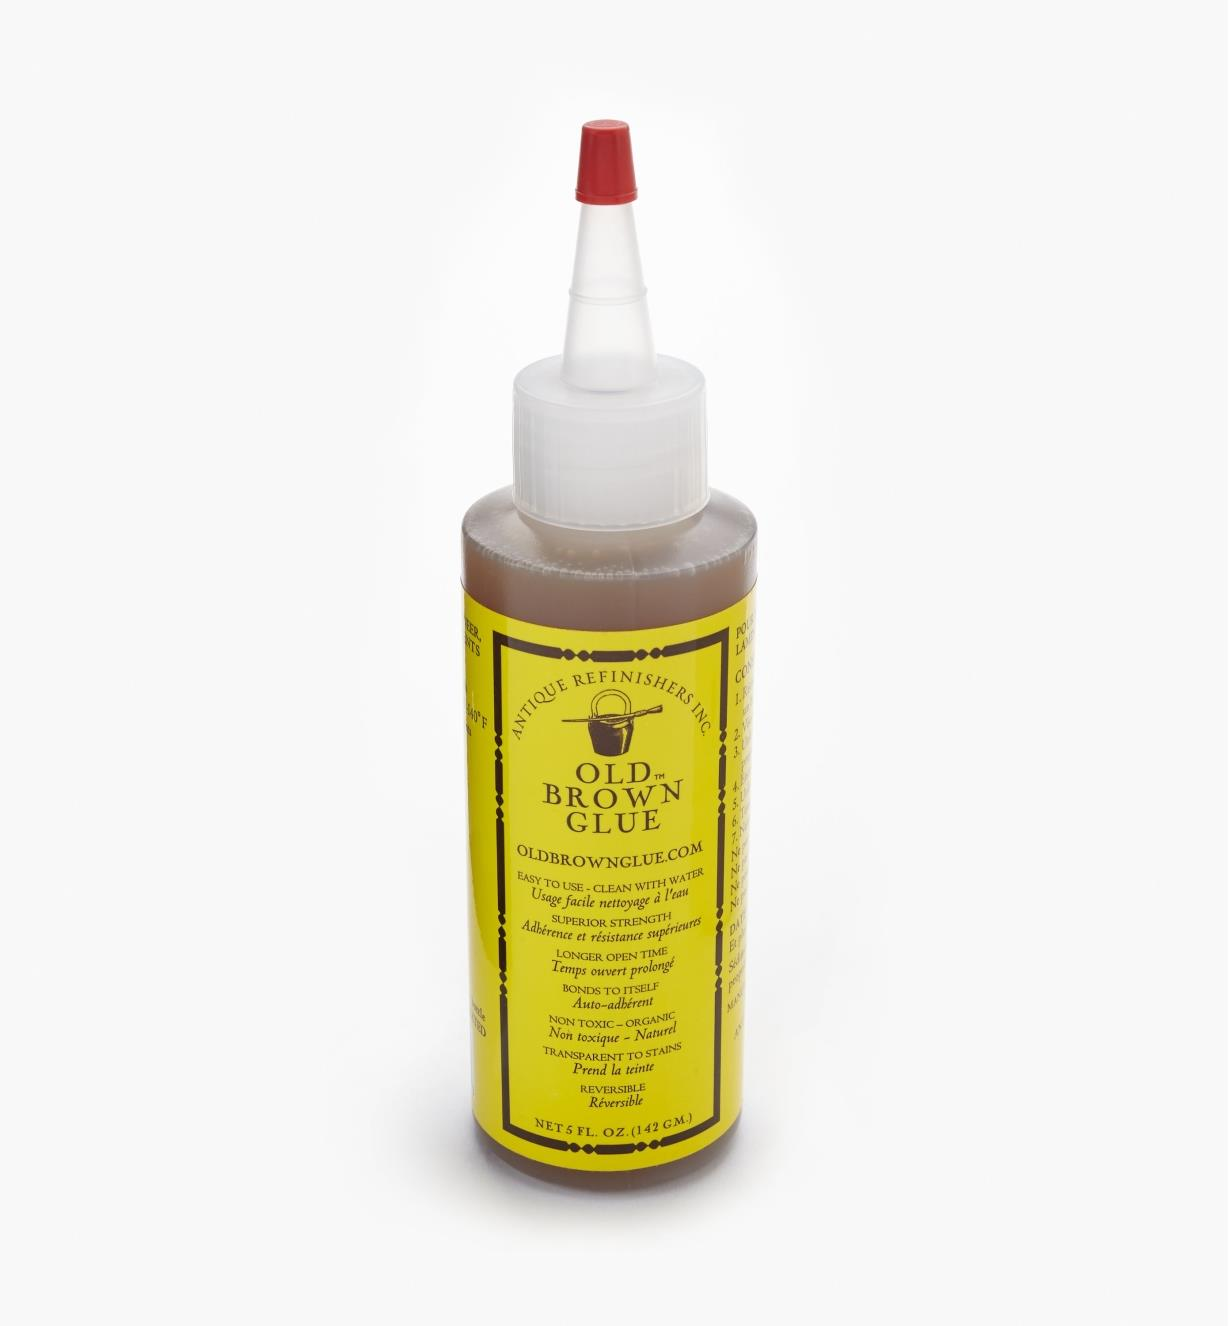 56K6010 - Old Brown Glue, 5 fl oz